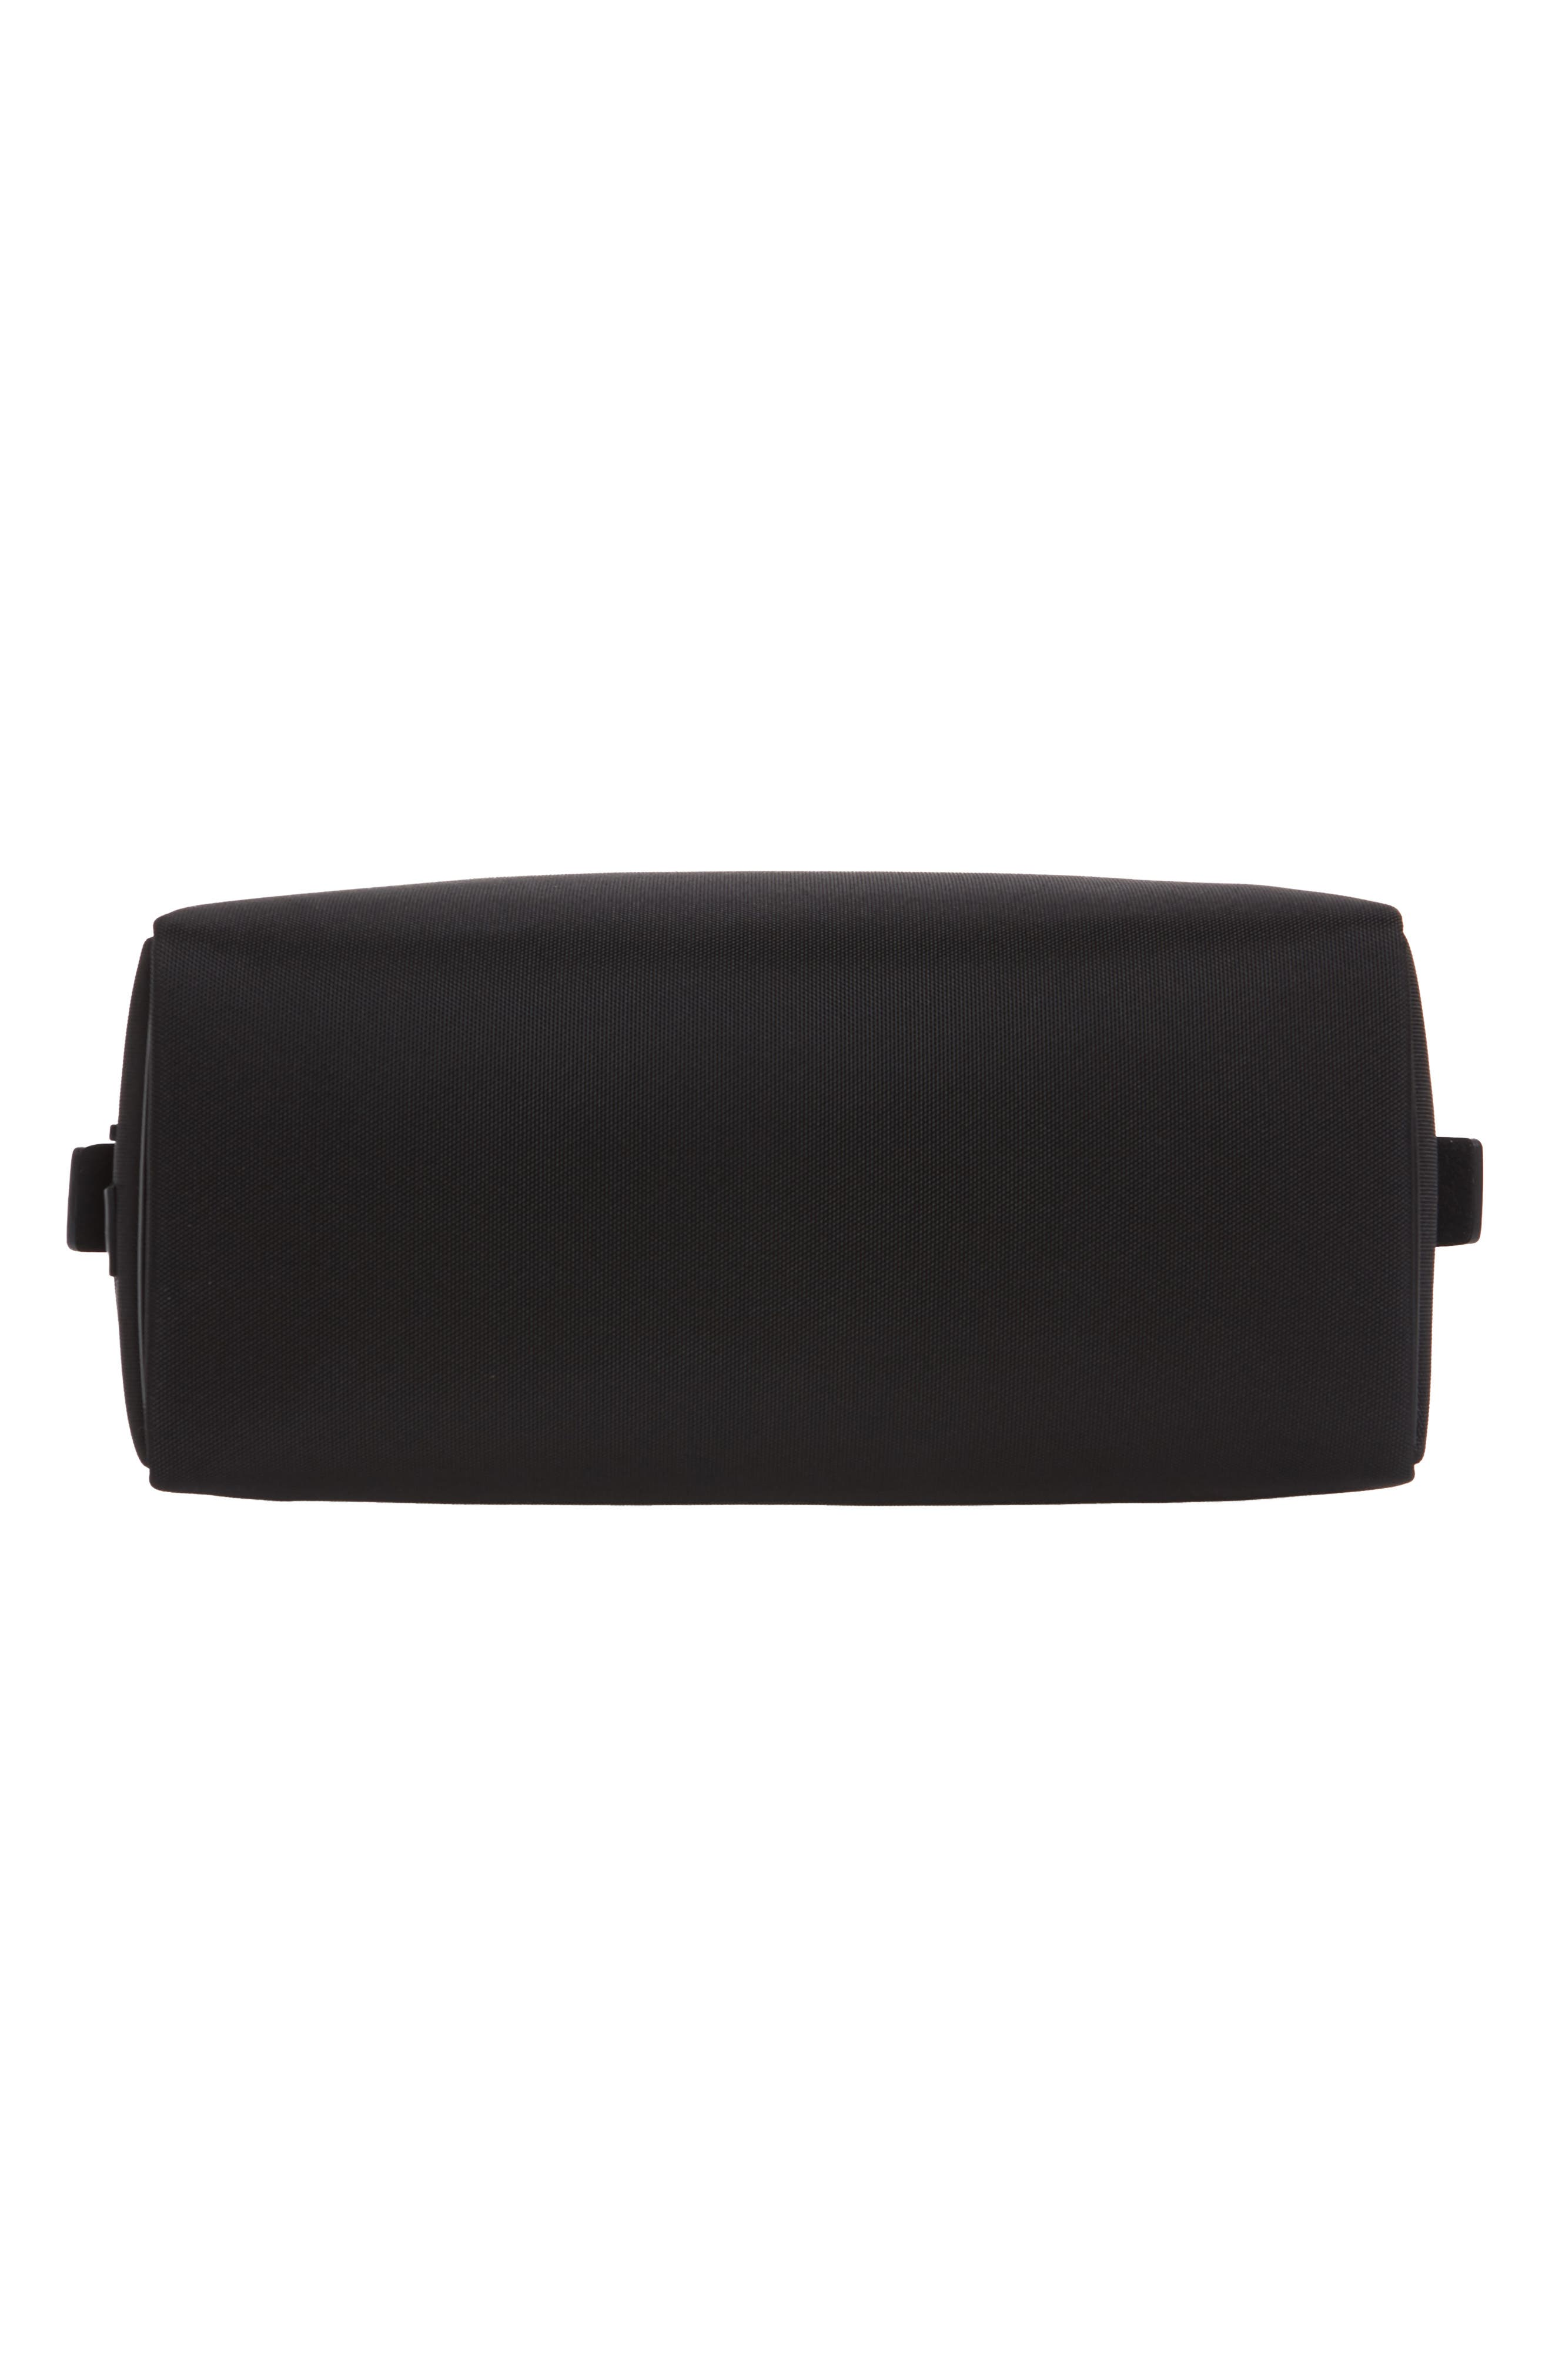 Nylon Dopp Kit,                             Alternate thumbnail 6, color,                             BLACK NYLON/ BLACK LEATHER